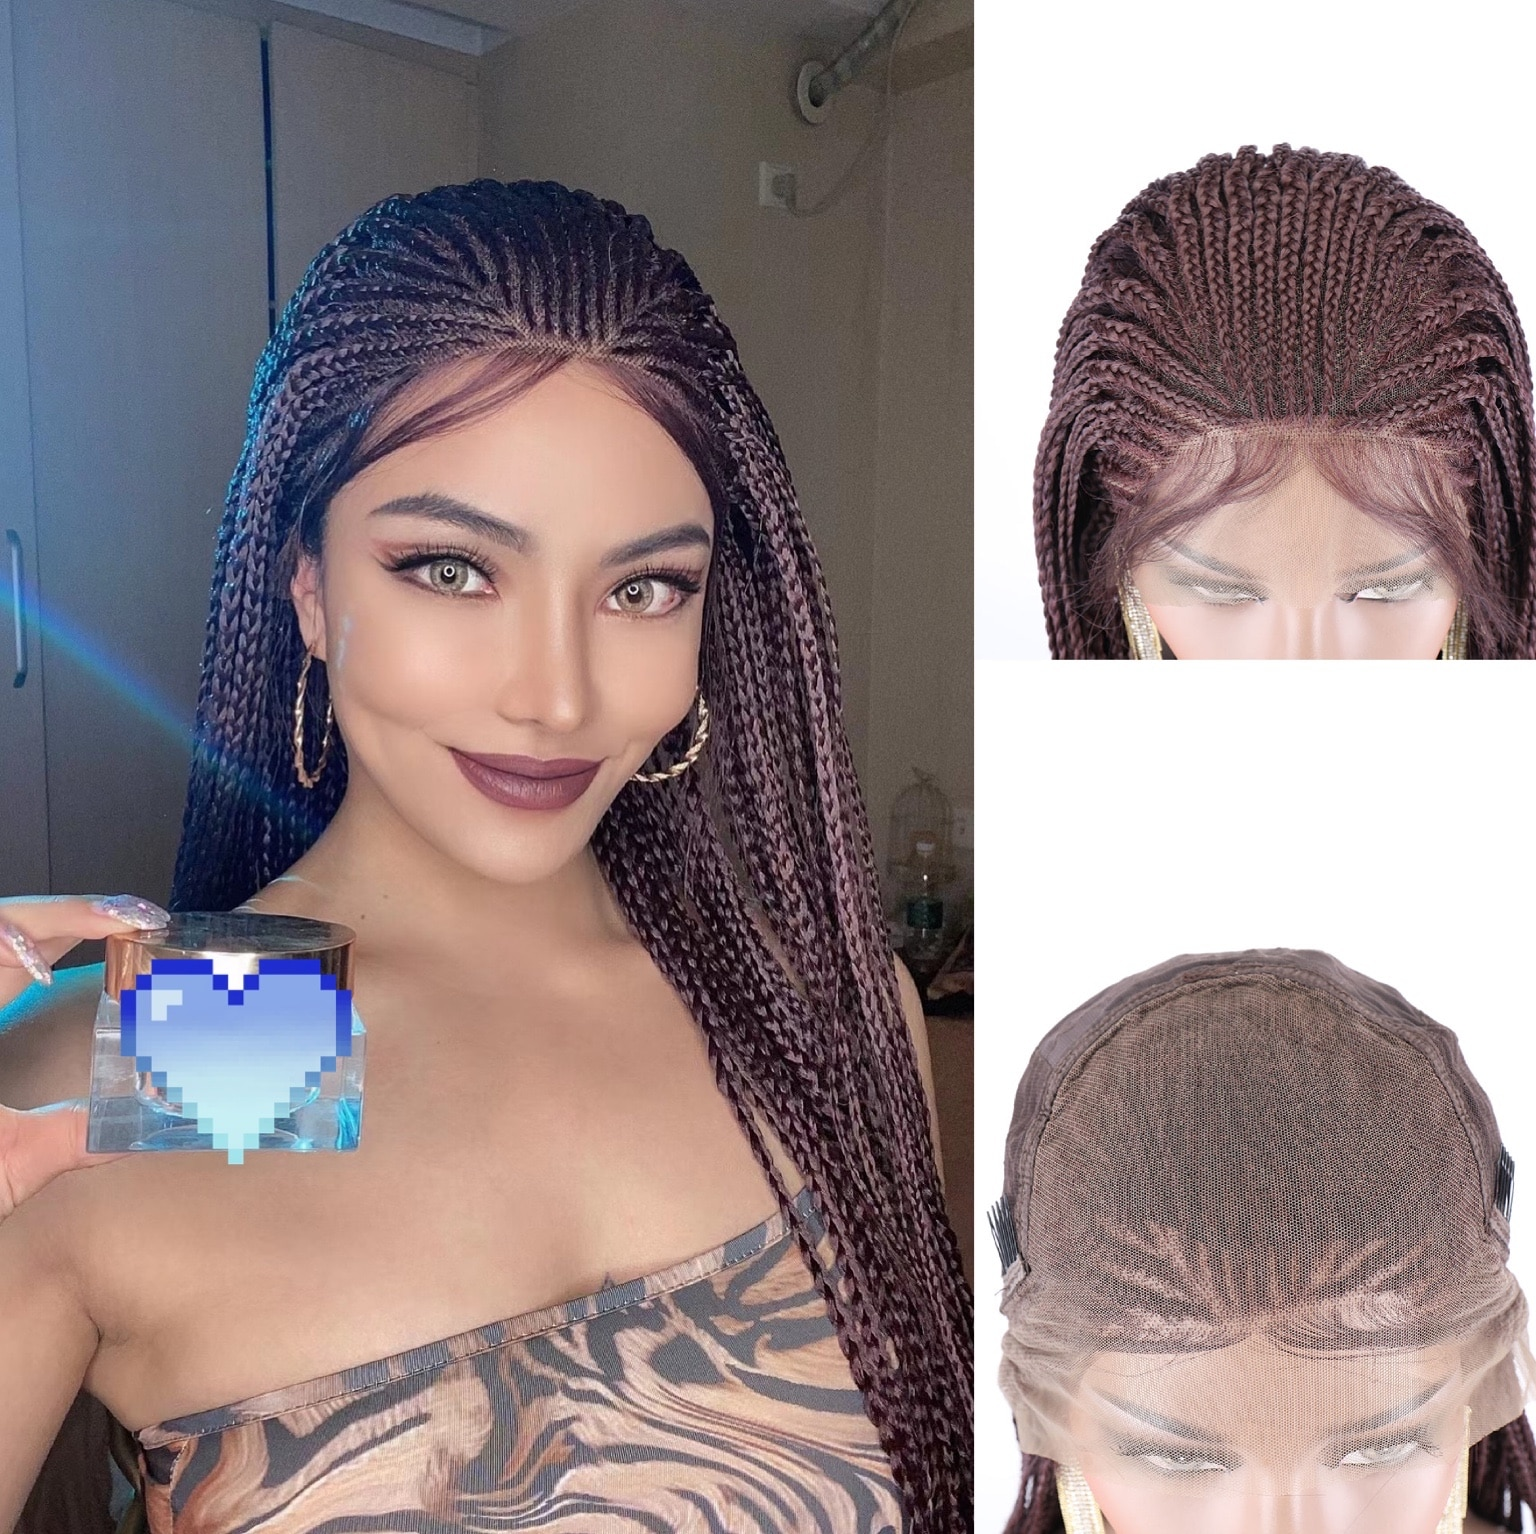 Briaided Wigs Lace Front Synthetic Wig Lace Front Braids TOOCCI African Braids Wig Box Braiding African Synthetic Wigs For Black